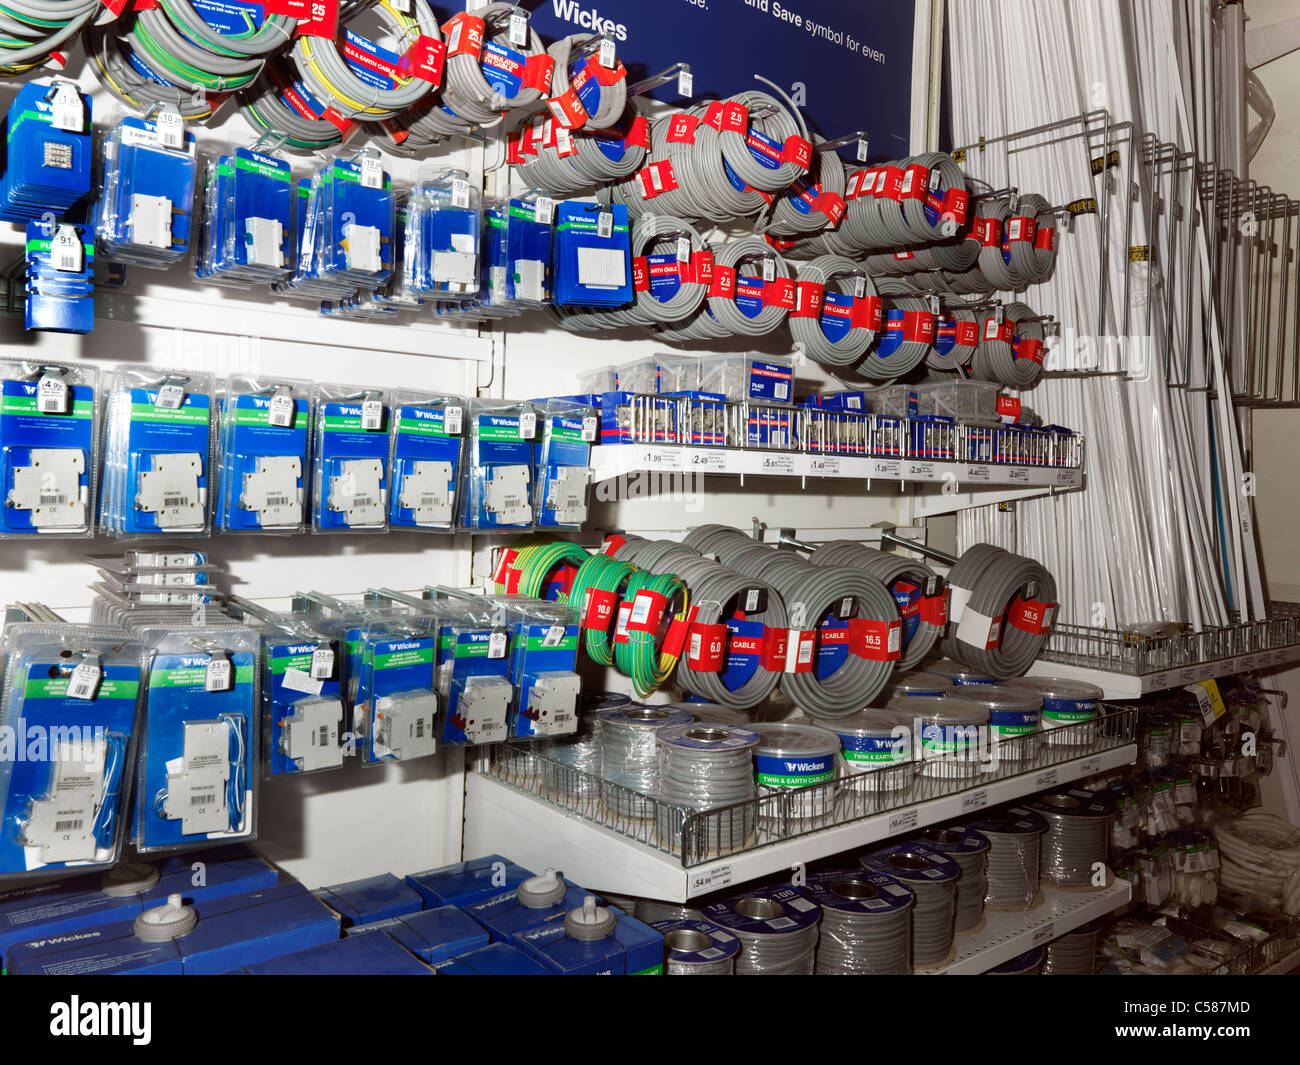 Electrical Fittings On Shelves In D.I.Y Store Circuit Breakers; Cables And Trunking - Stock Image